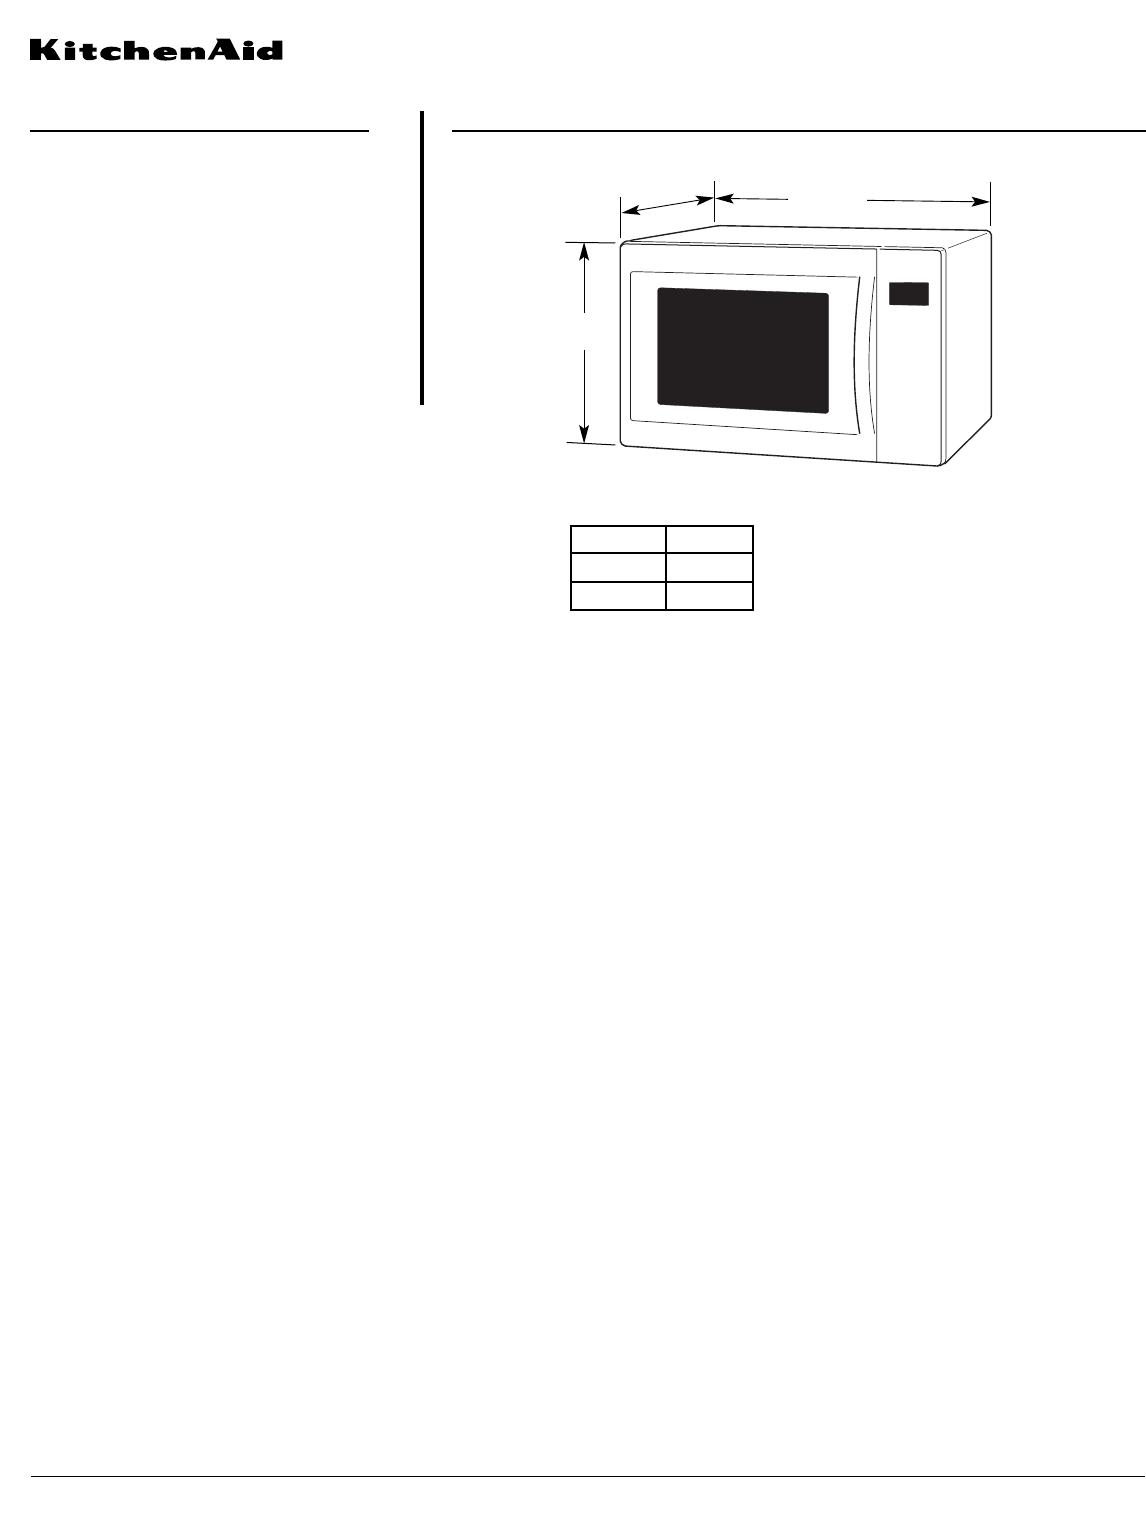 KitchenAid Microwave Oven KCMS1555S User Guide